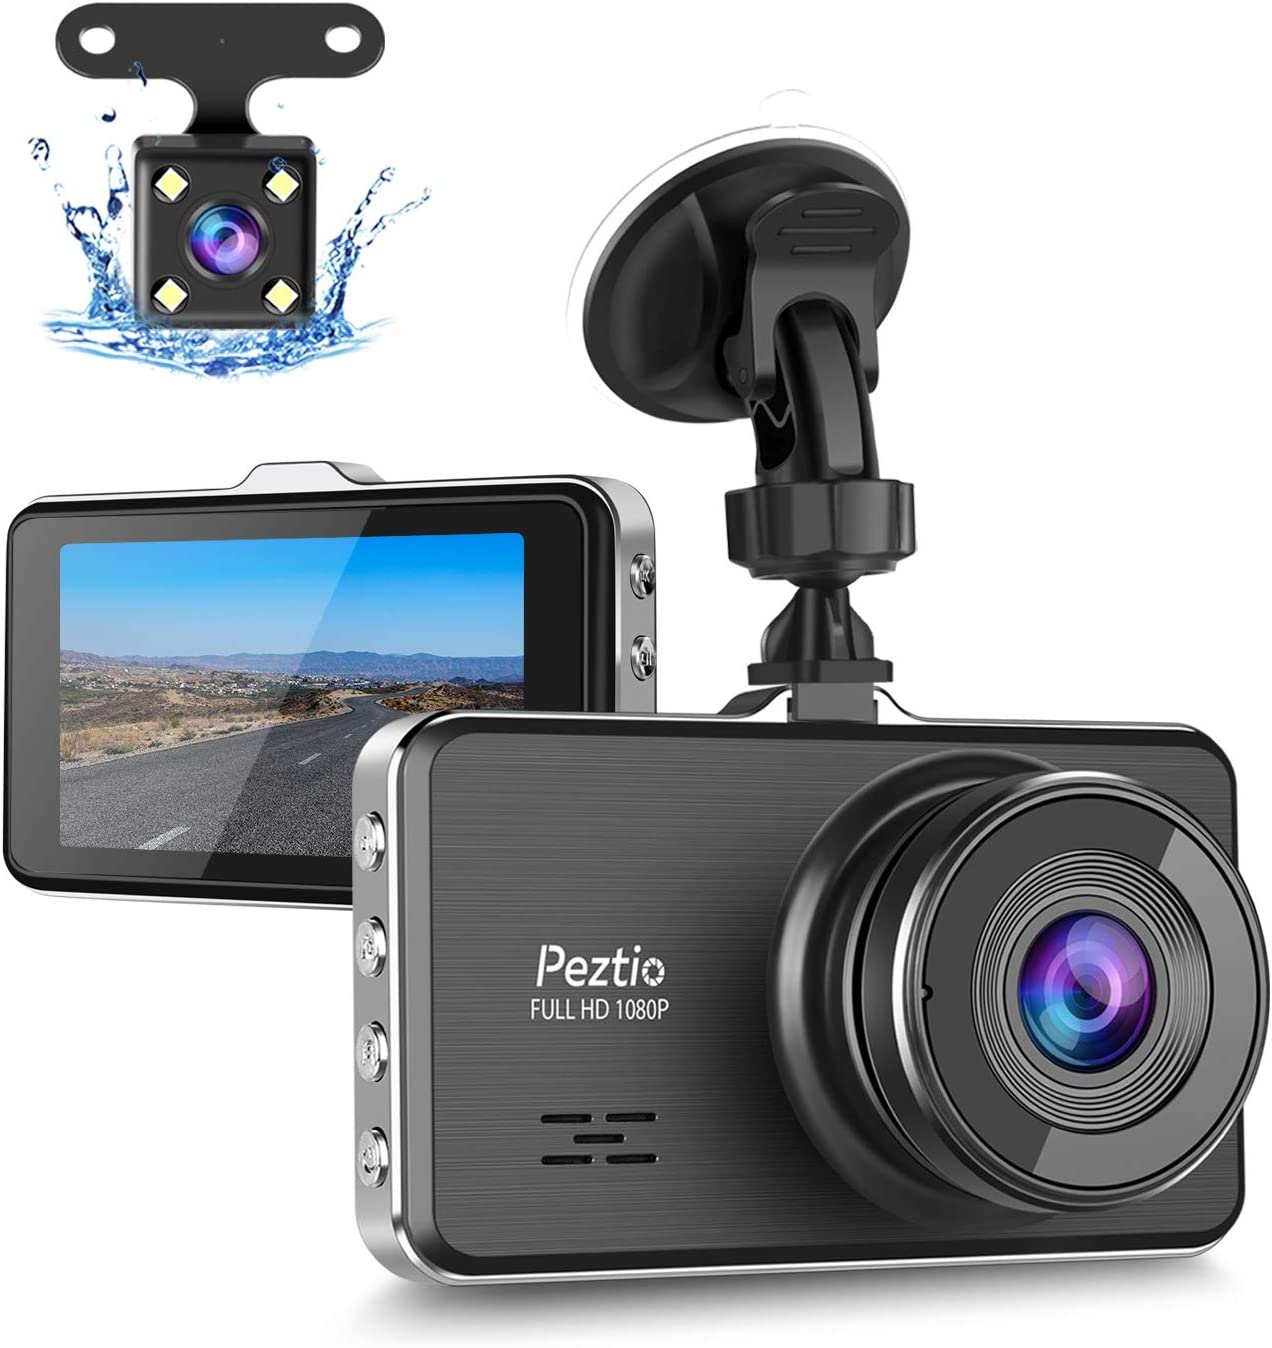 Dash Cam Front and Rear, Full HD 1080P Dash Camera for Cars, Car Dash Camera with 3 inch IPS Screen, G-Sensor, Parking Monitor, Loop Recording, Night Vision